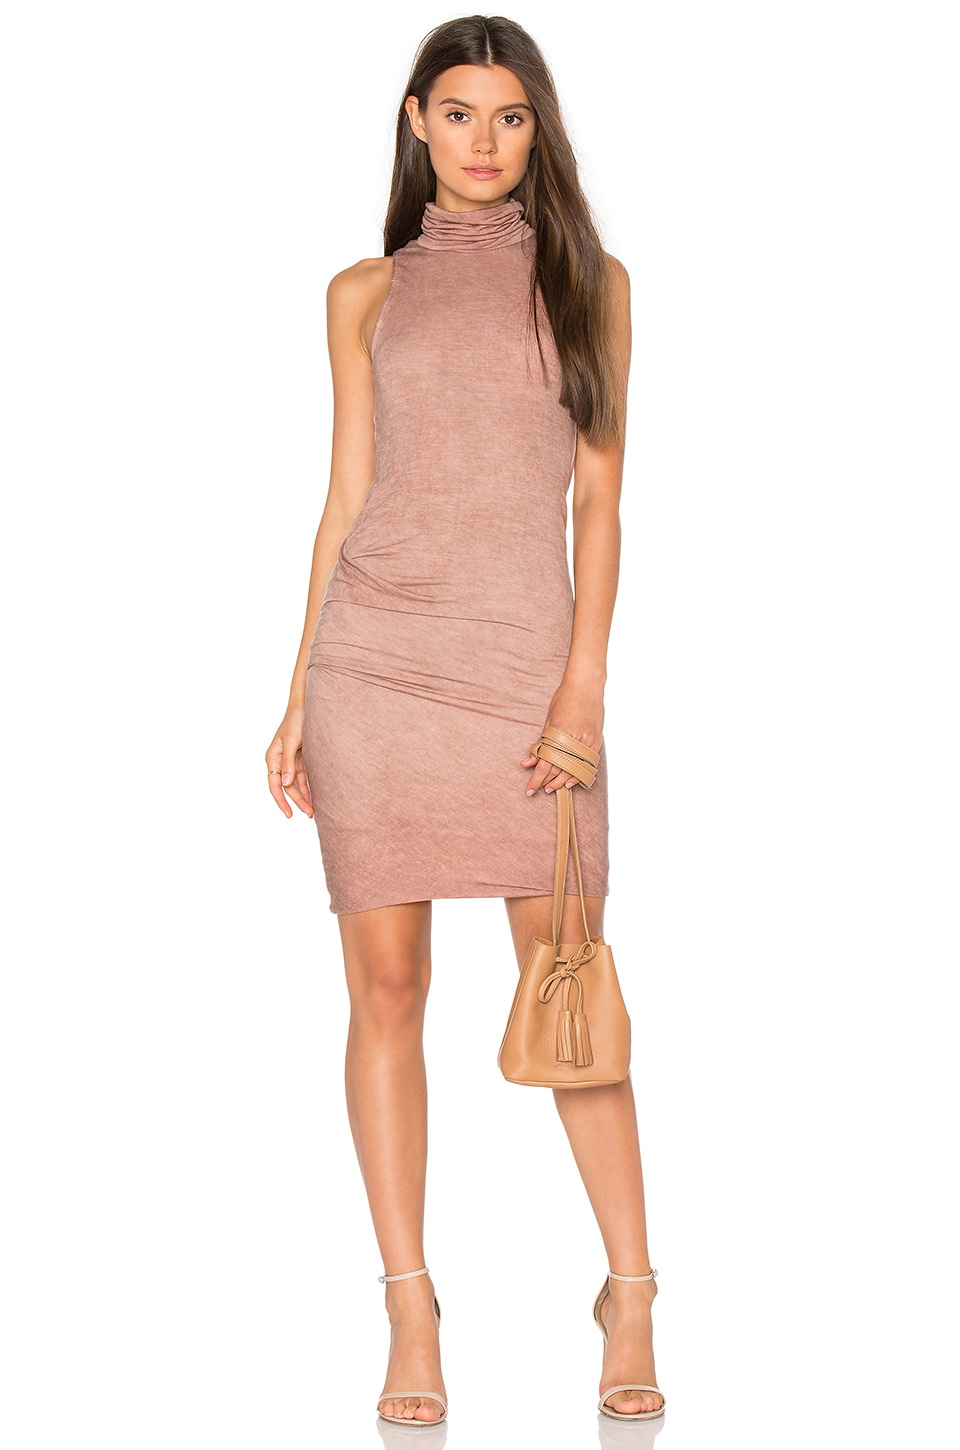 The Bodycon Dress by YORK street